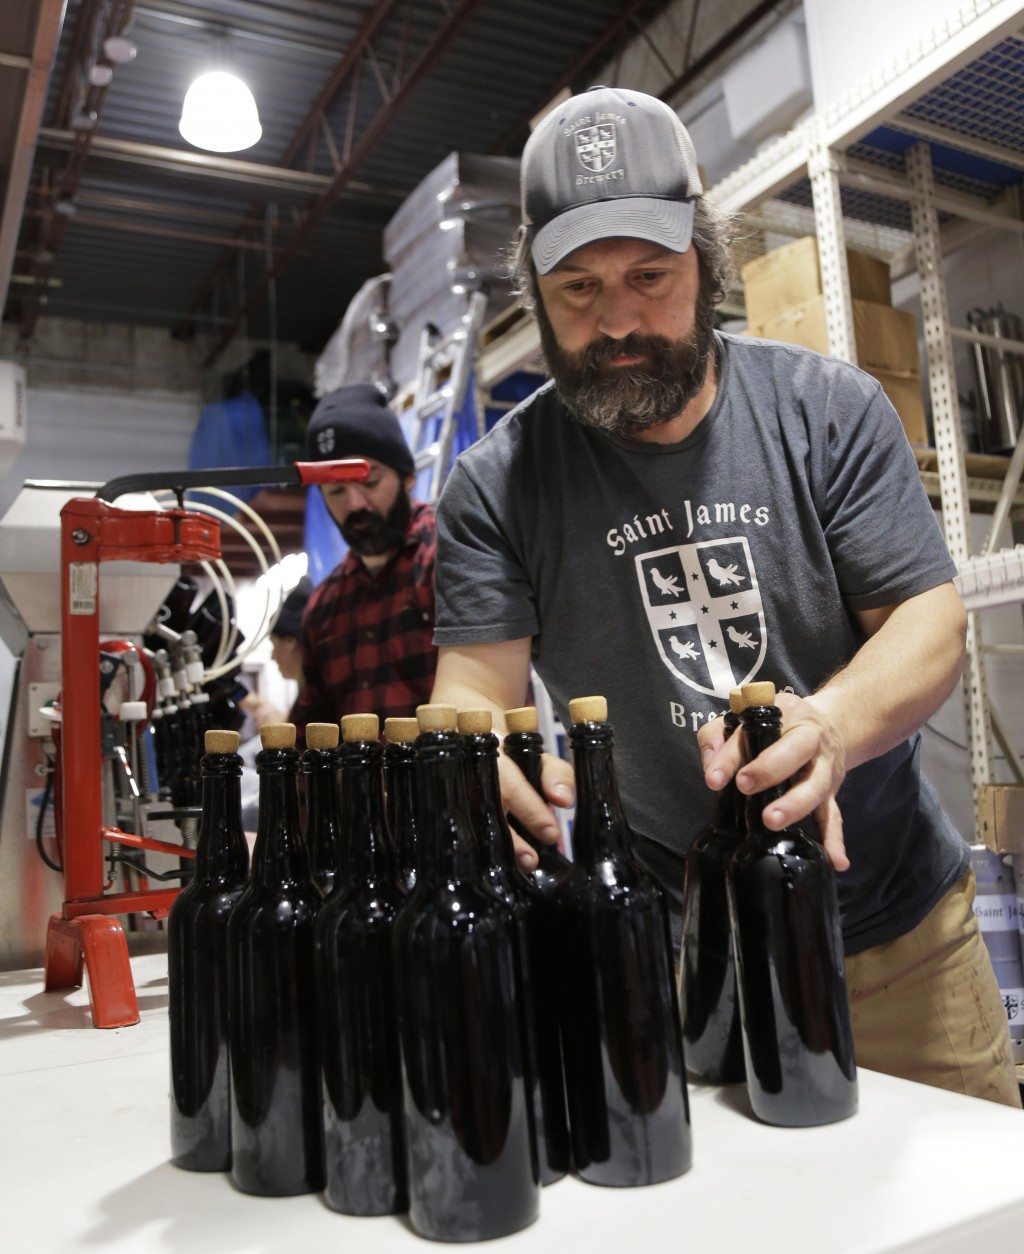 In this March 4, 2019, photo, brewery founder Jamie Adams, right, and John Condzella bottle a batch of their Dubbel beer at the St. James Brewery in H